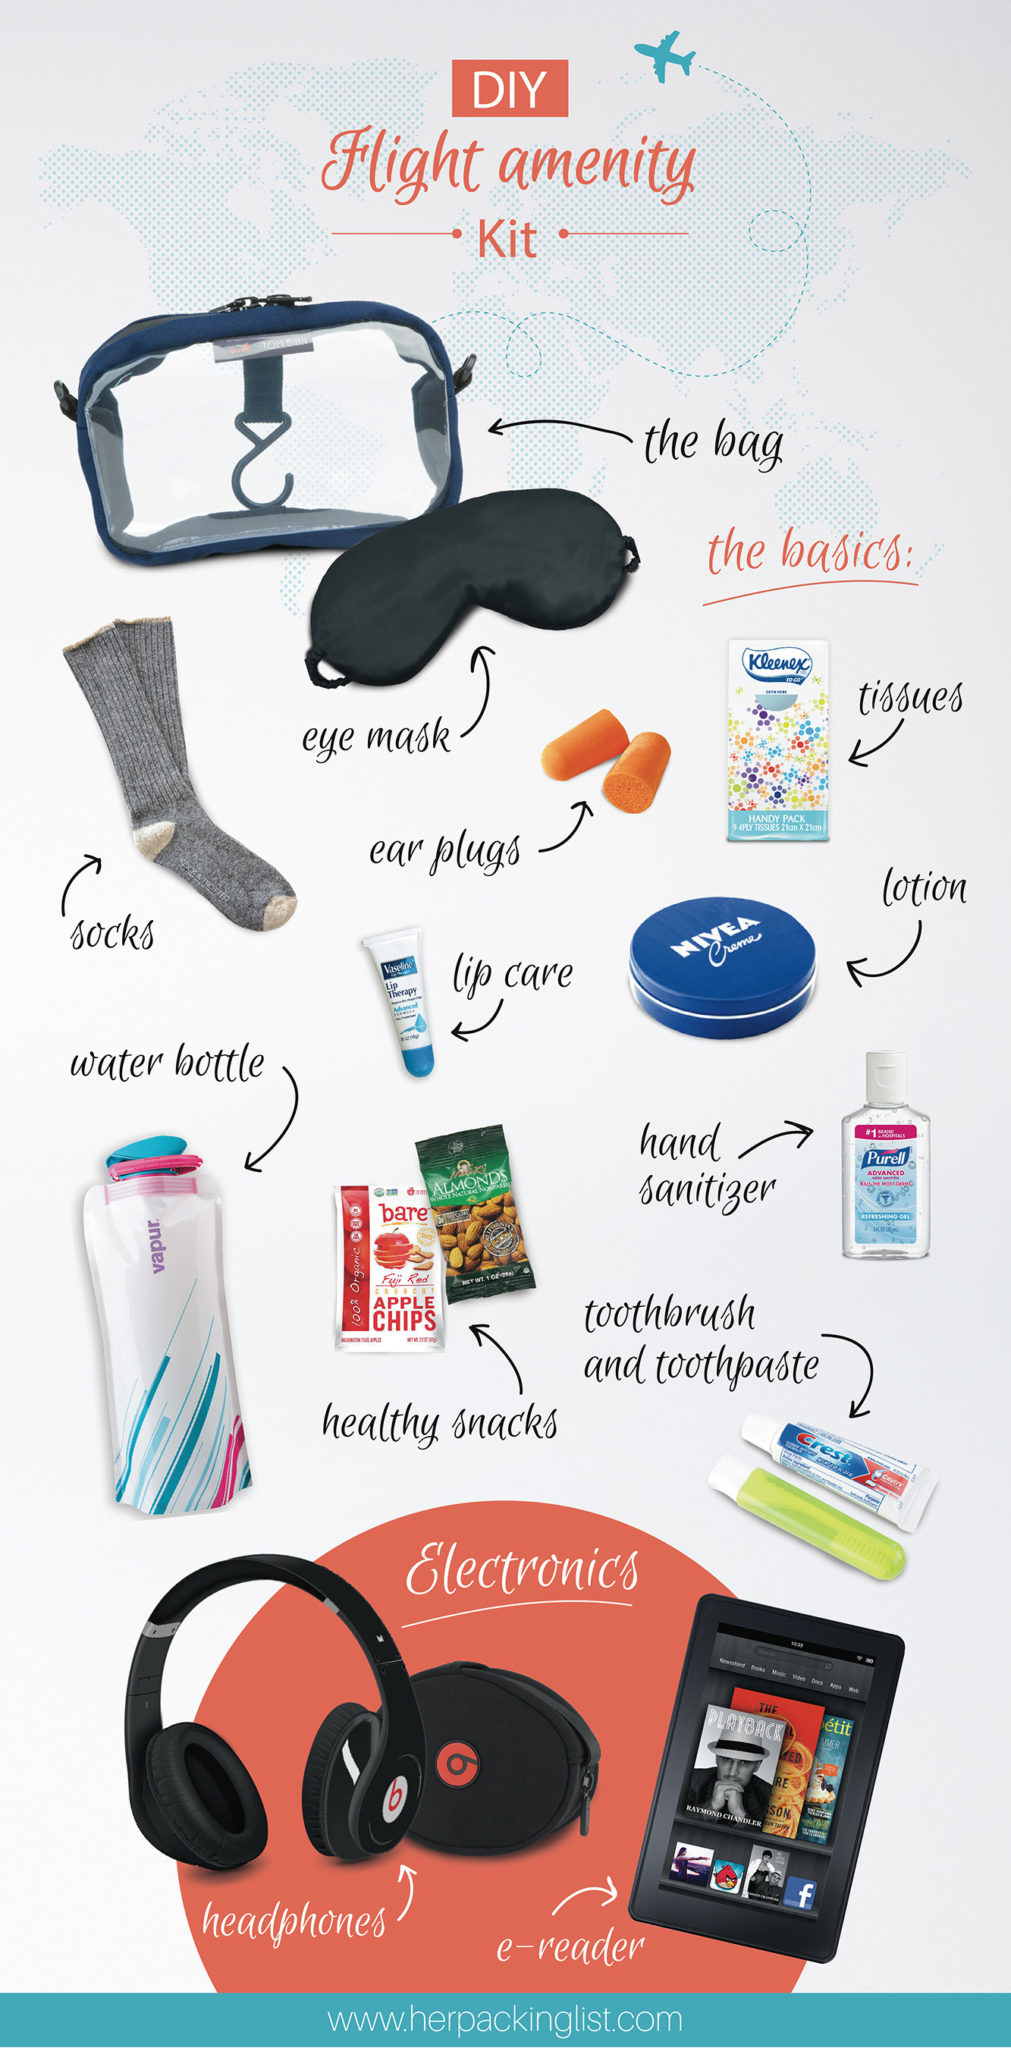 DIY Flight Amenity Kit, by Her Packing List